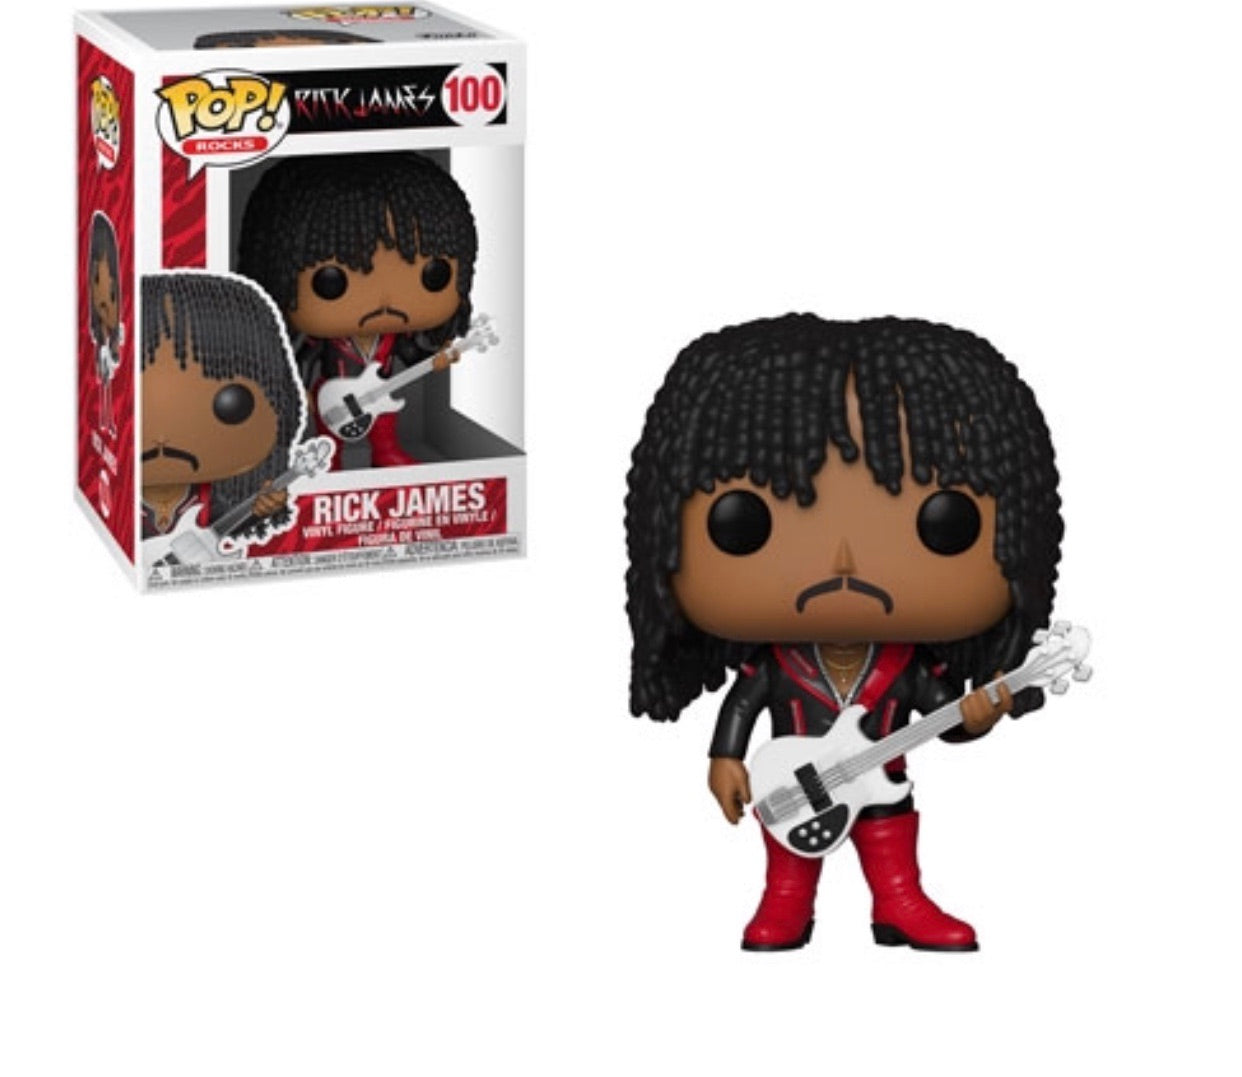 Pop! Rocks: Rick James(PreOrder)